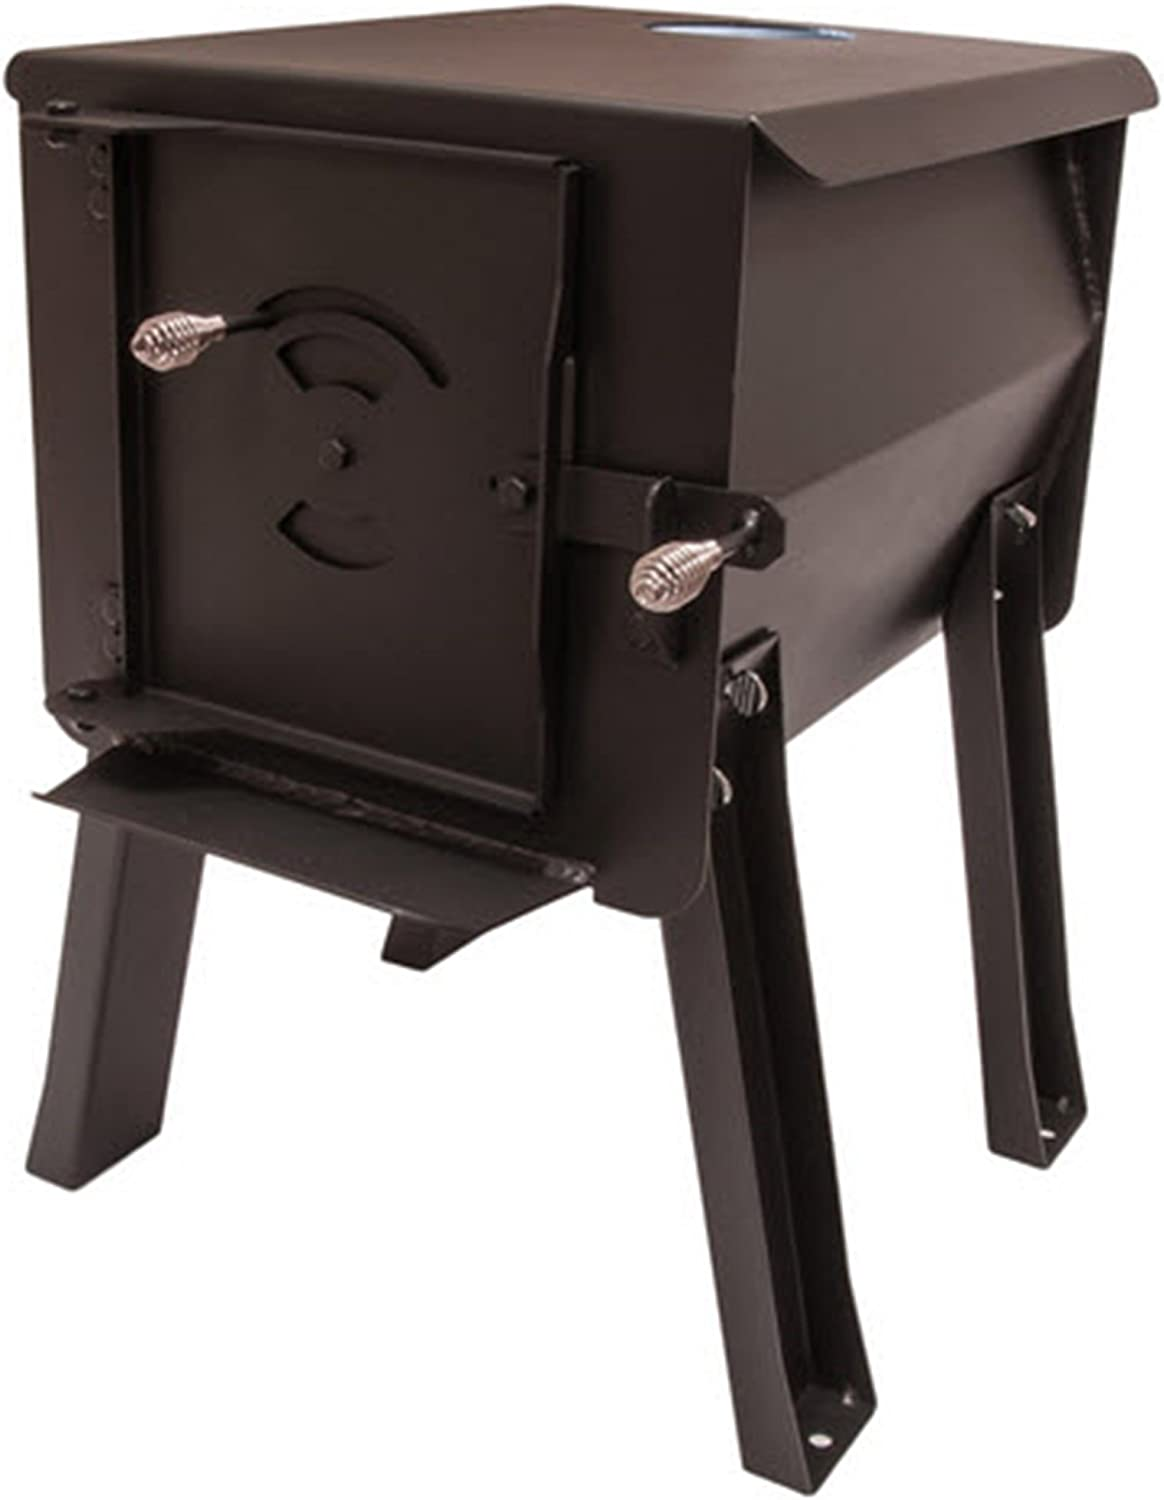 "England's Stove Works Survivor 12-CSS""Cub"" Portable Camp/Cook Wood Stove 1.0 Cubic Feet"